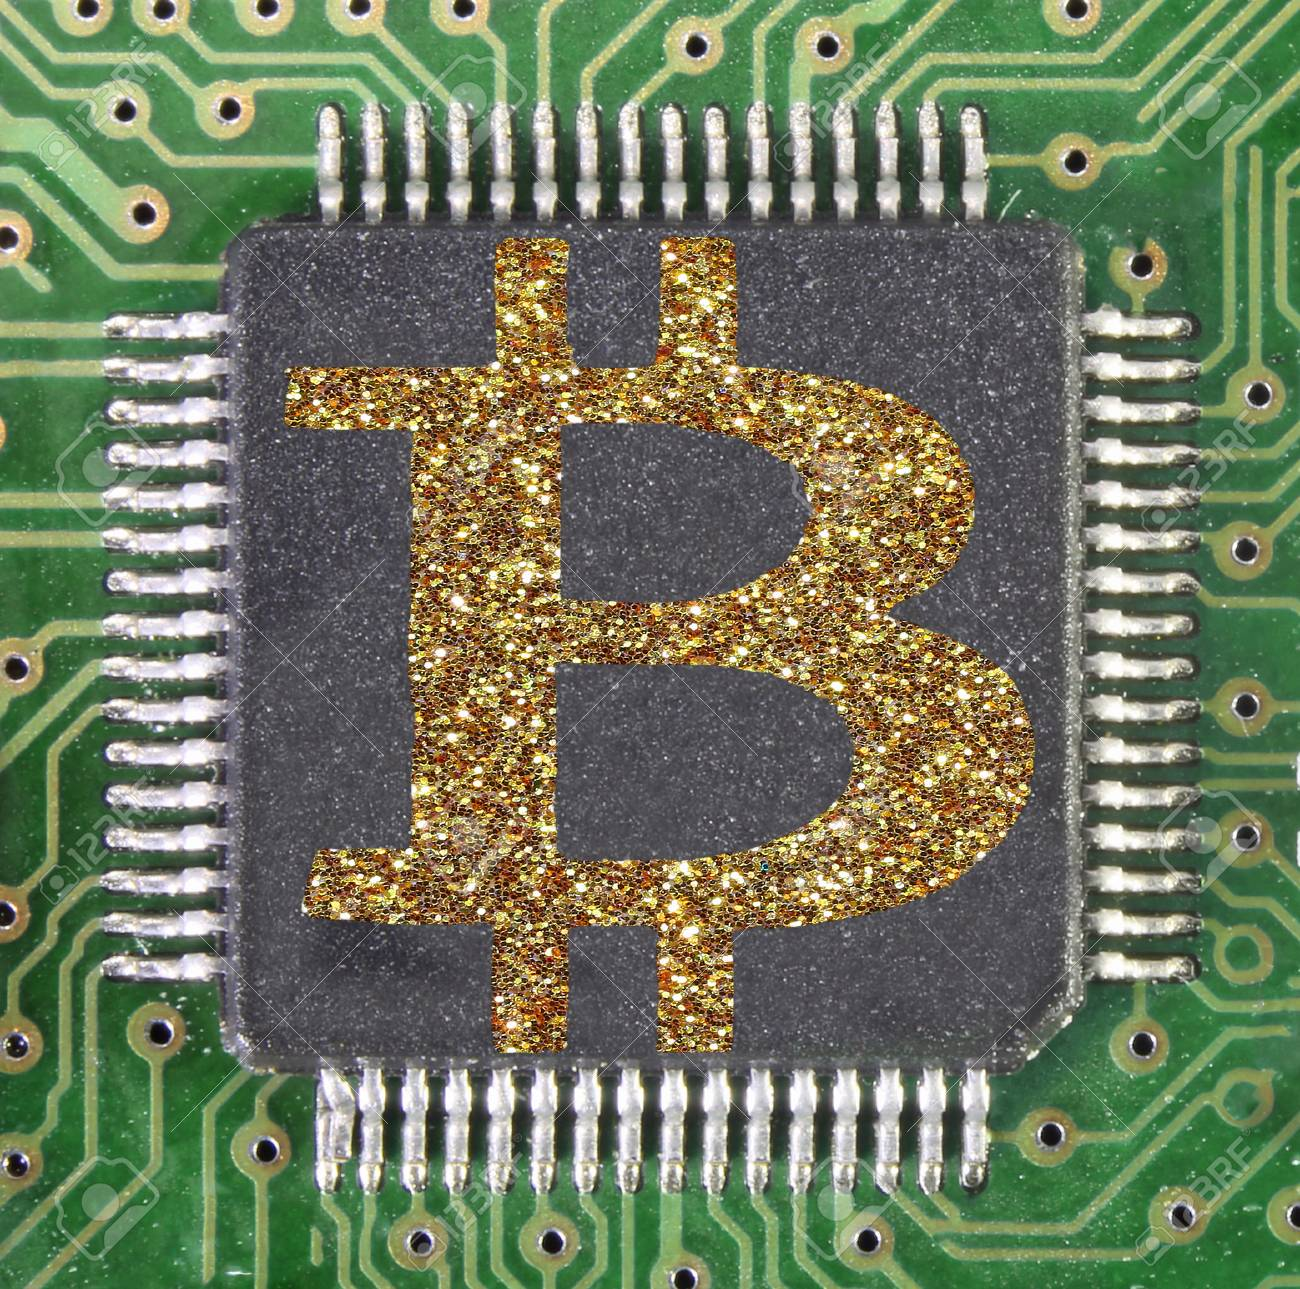 Big B Of Bitcoin Cryptocurrency Symbol On A Electronic Circuit Symbols Stock Photo 94250454